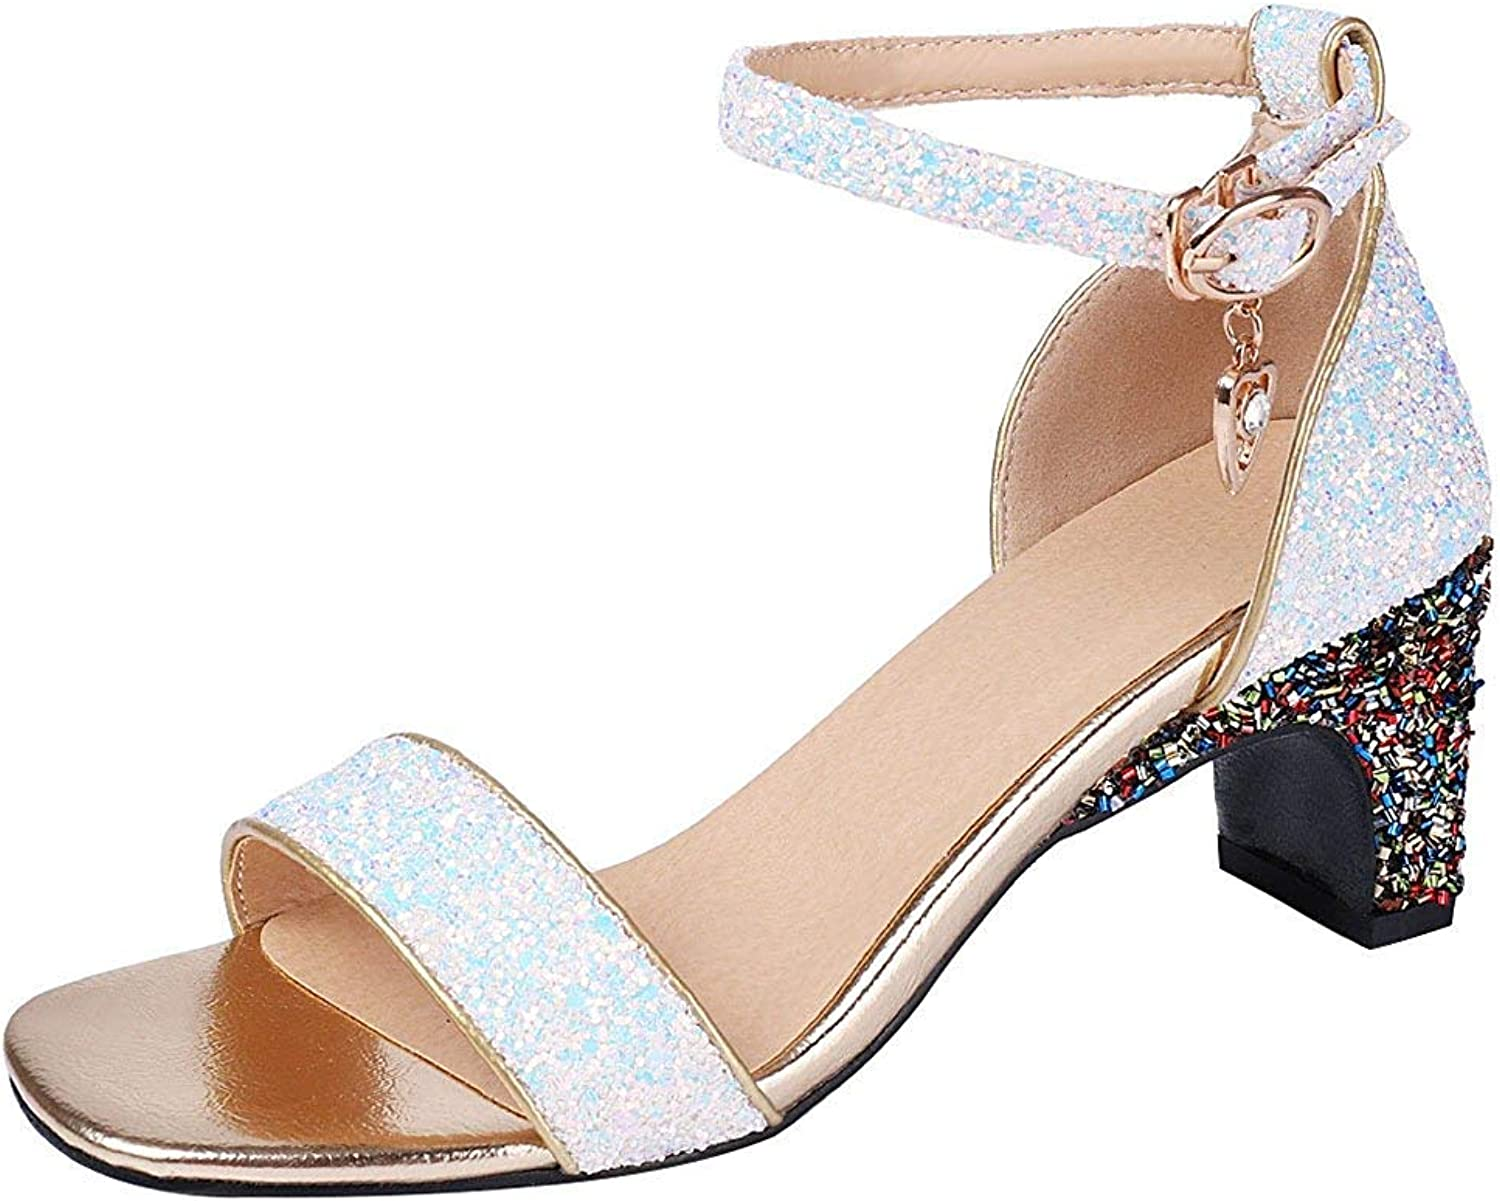 Ghapwe Women's Fashion Sequined Ankle Strap Sandals - Glitter Open Toe Pendant - Buckle Chunky Medium Heel Club shoes Purple 8 M US